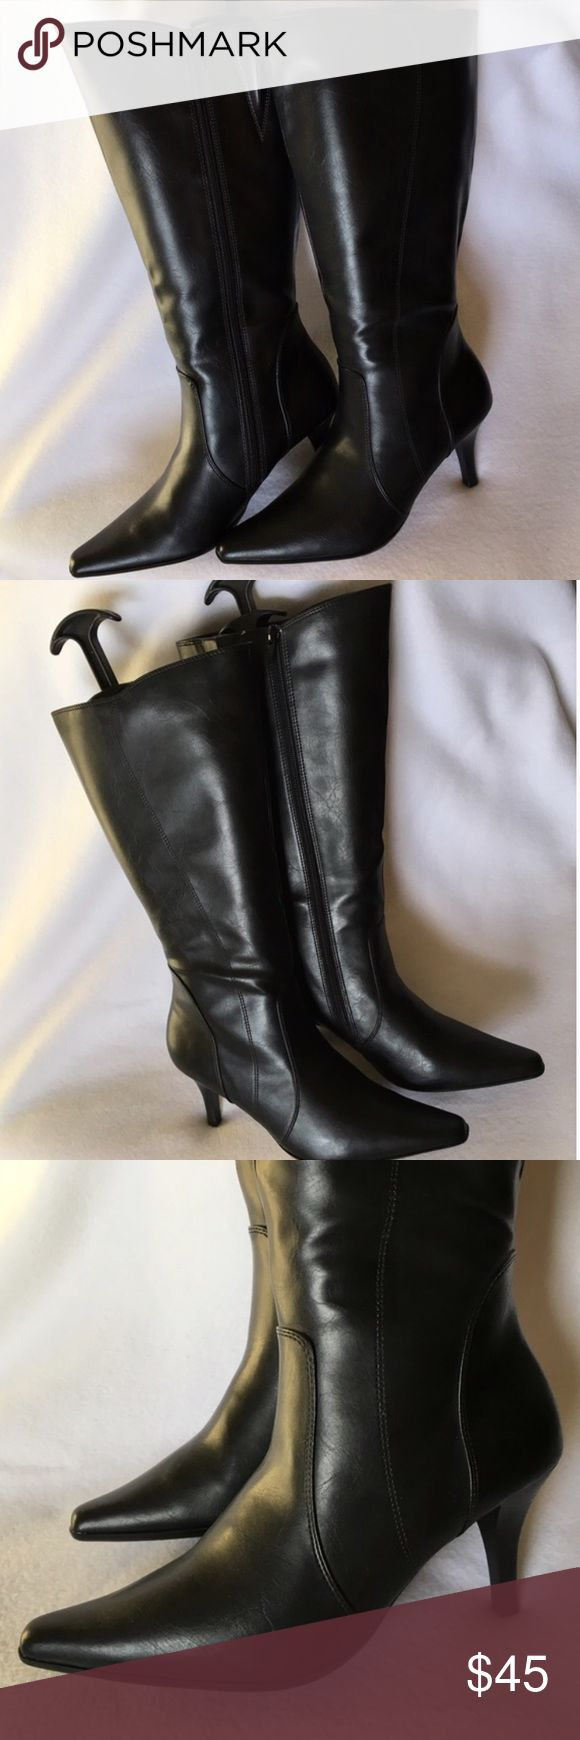 """NEW! Black Leather Knee-High Heel Boots Size 8 Black knee-high leather boots. NEW without box. Pointed toe. 3"""" heels. Side zippers. Ladies shoe size 8. 🌸 BUNDLE AND SAVE 10% 🌸 Vintage Shoes Heeled Boots"""